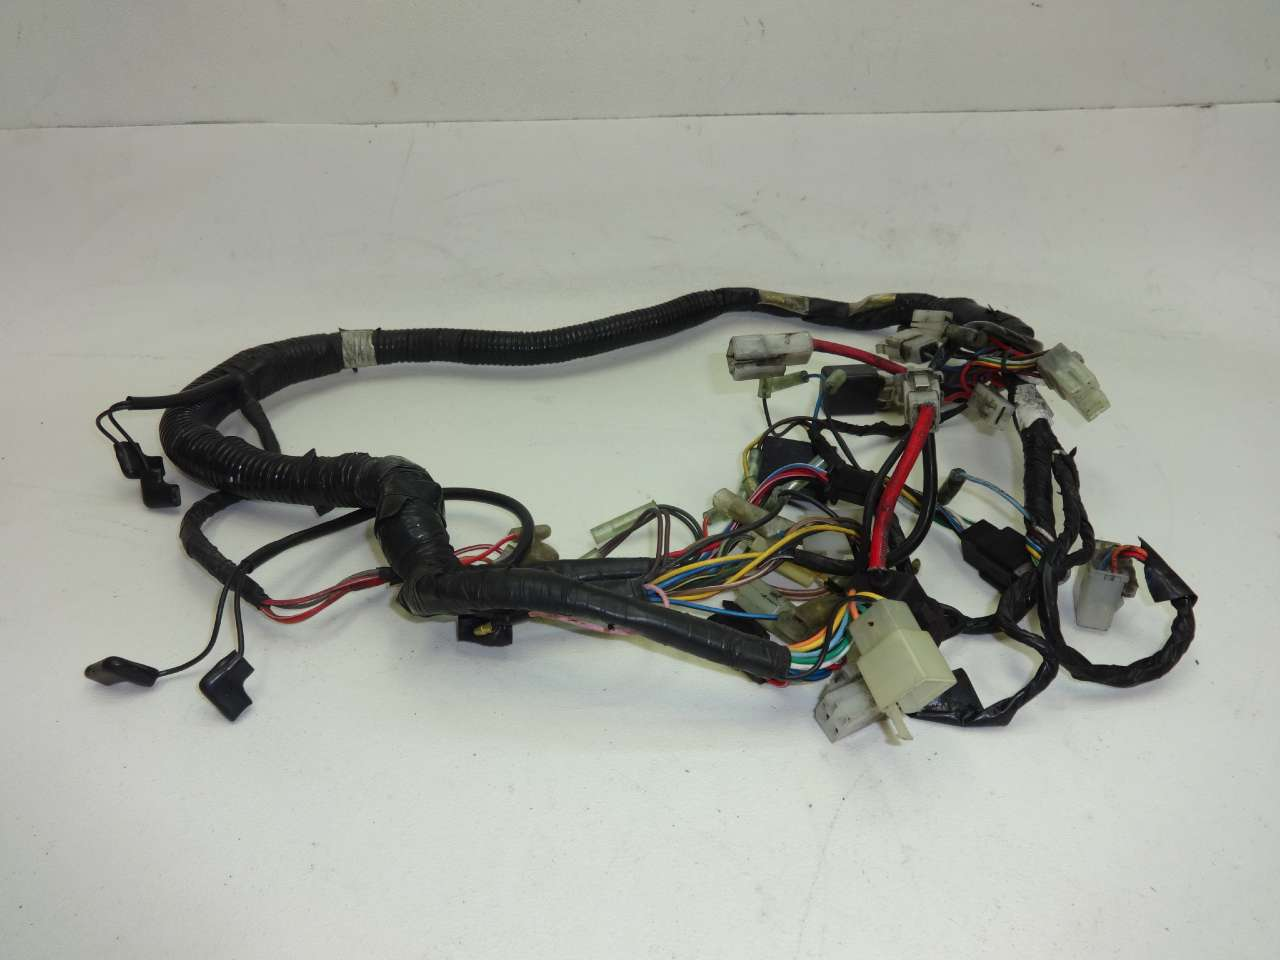 19sb beb171c649dd9f86d5e48ad8b1d9f5a4 wire harness yamaha xv 750 virago 1988 1998 201102245 virago wiring harness remove relays 1983 at panicattacktreatment.co